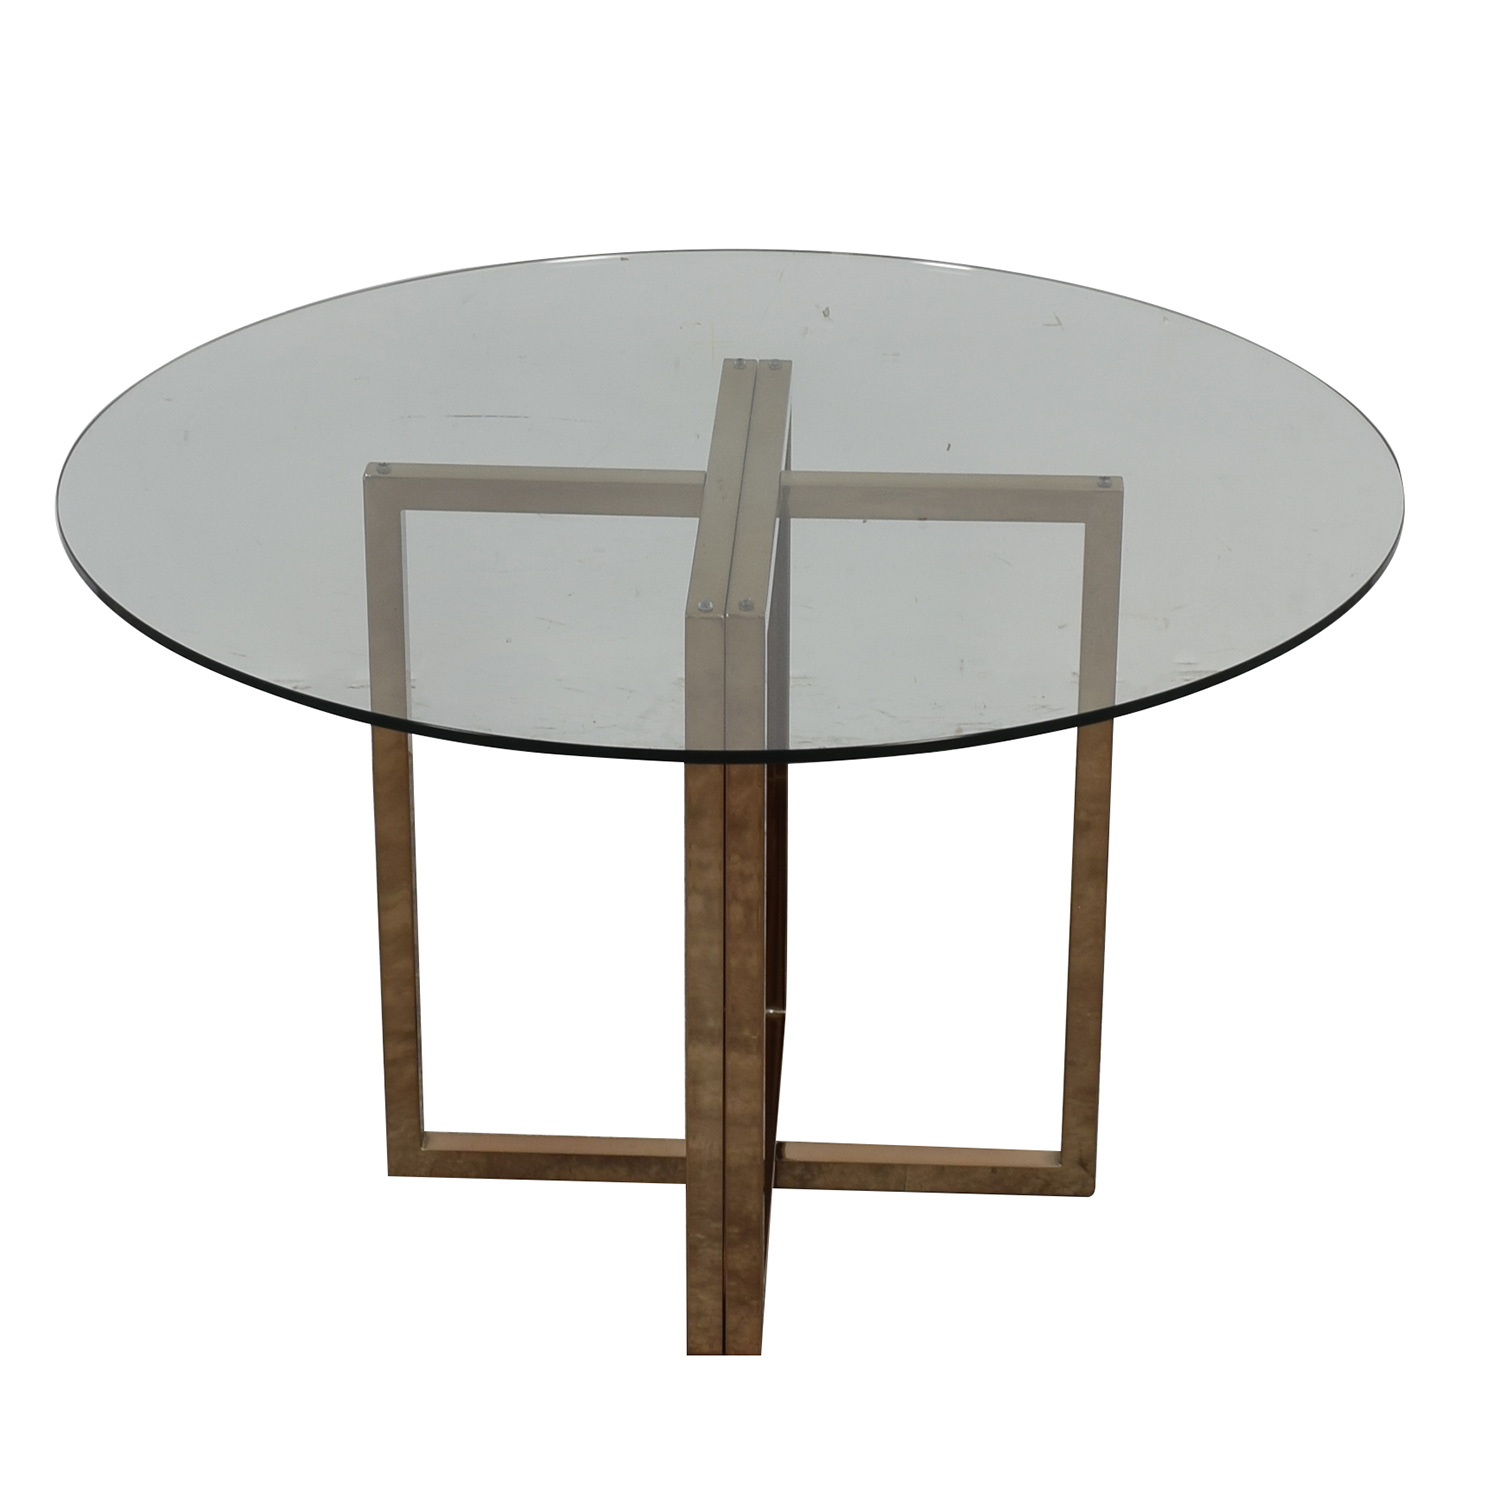 CB2 CB2 Glass and Chrome Round Dining Table Dinner Tables